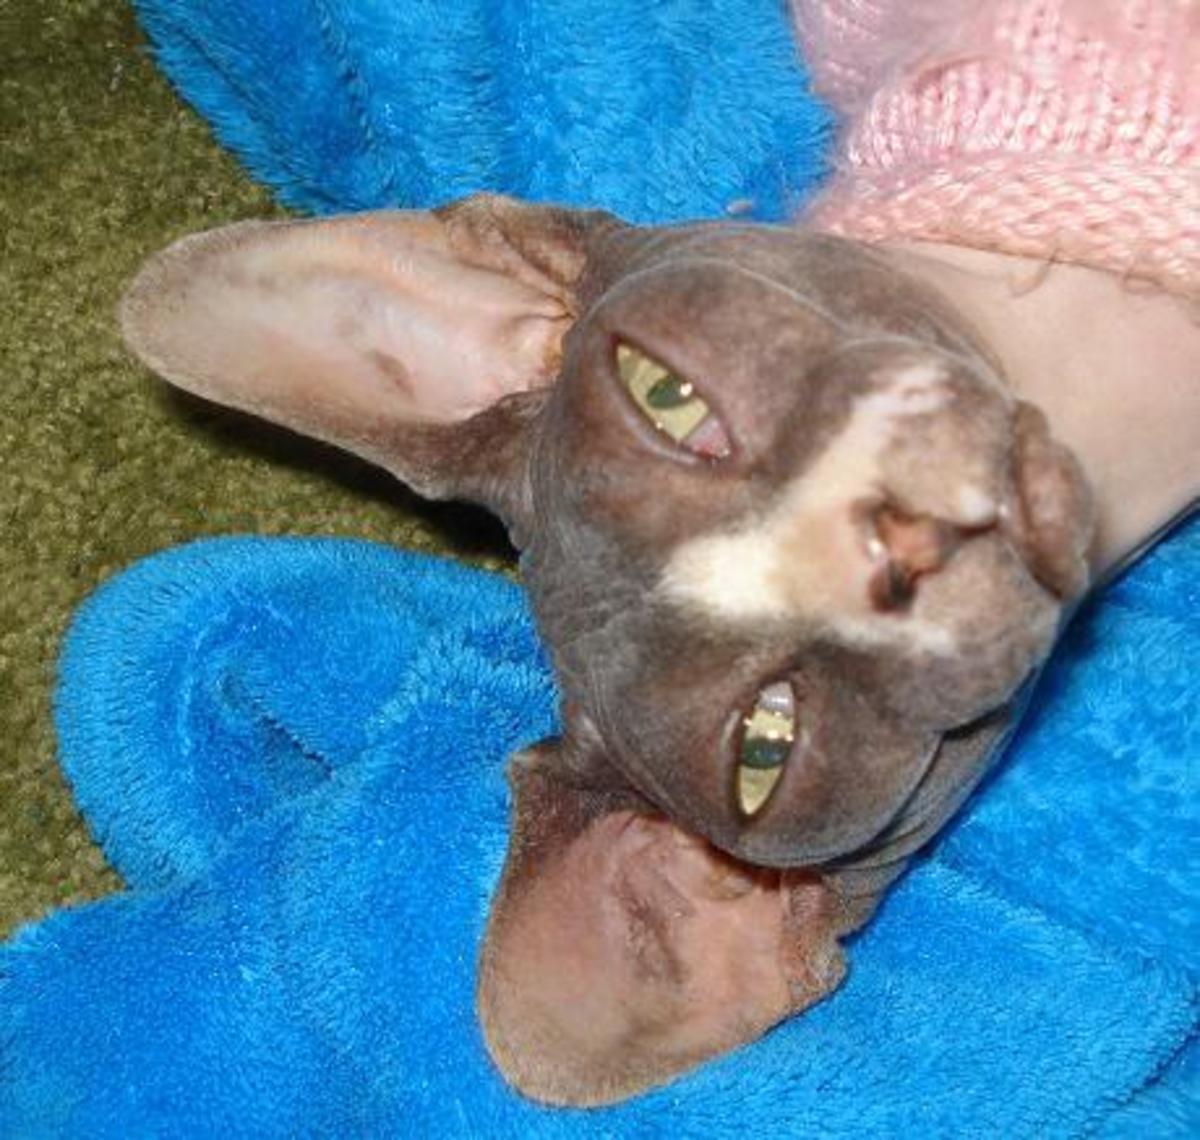 This is Sloopy a sphynx (or hairless) cat who shows the likely future of domestic cats... onward with new mutations!